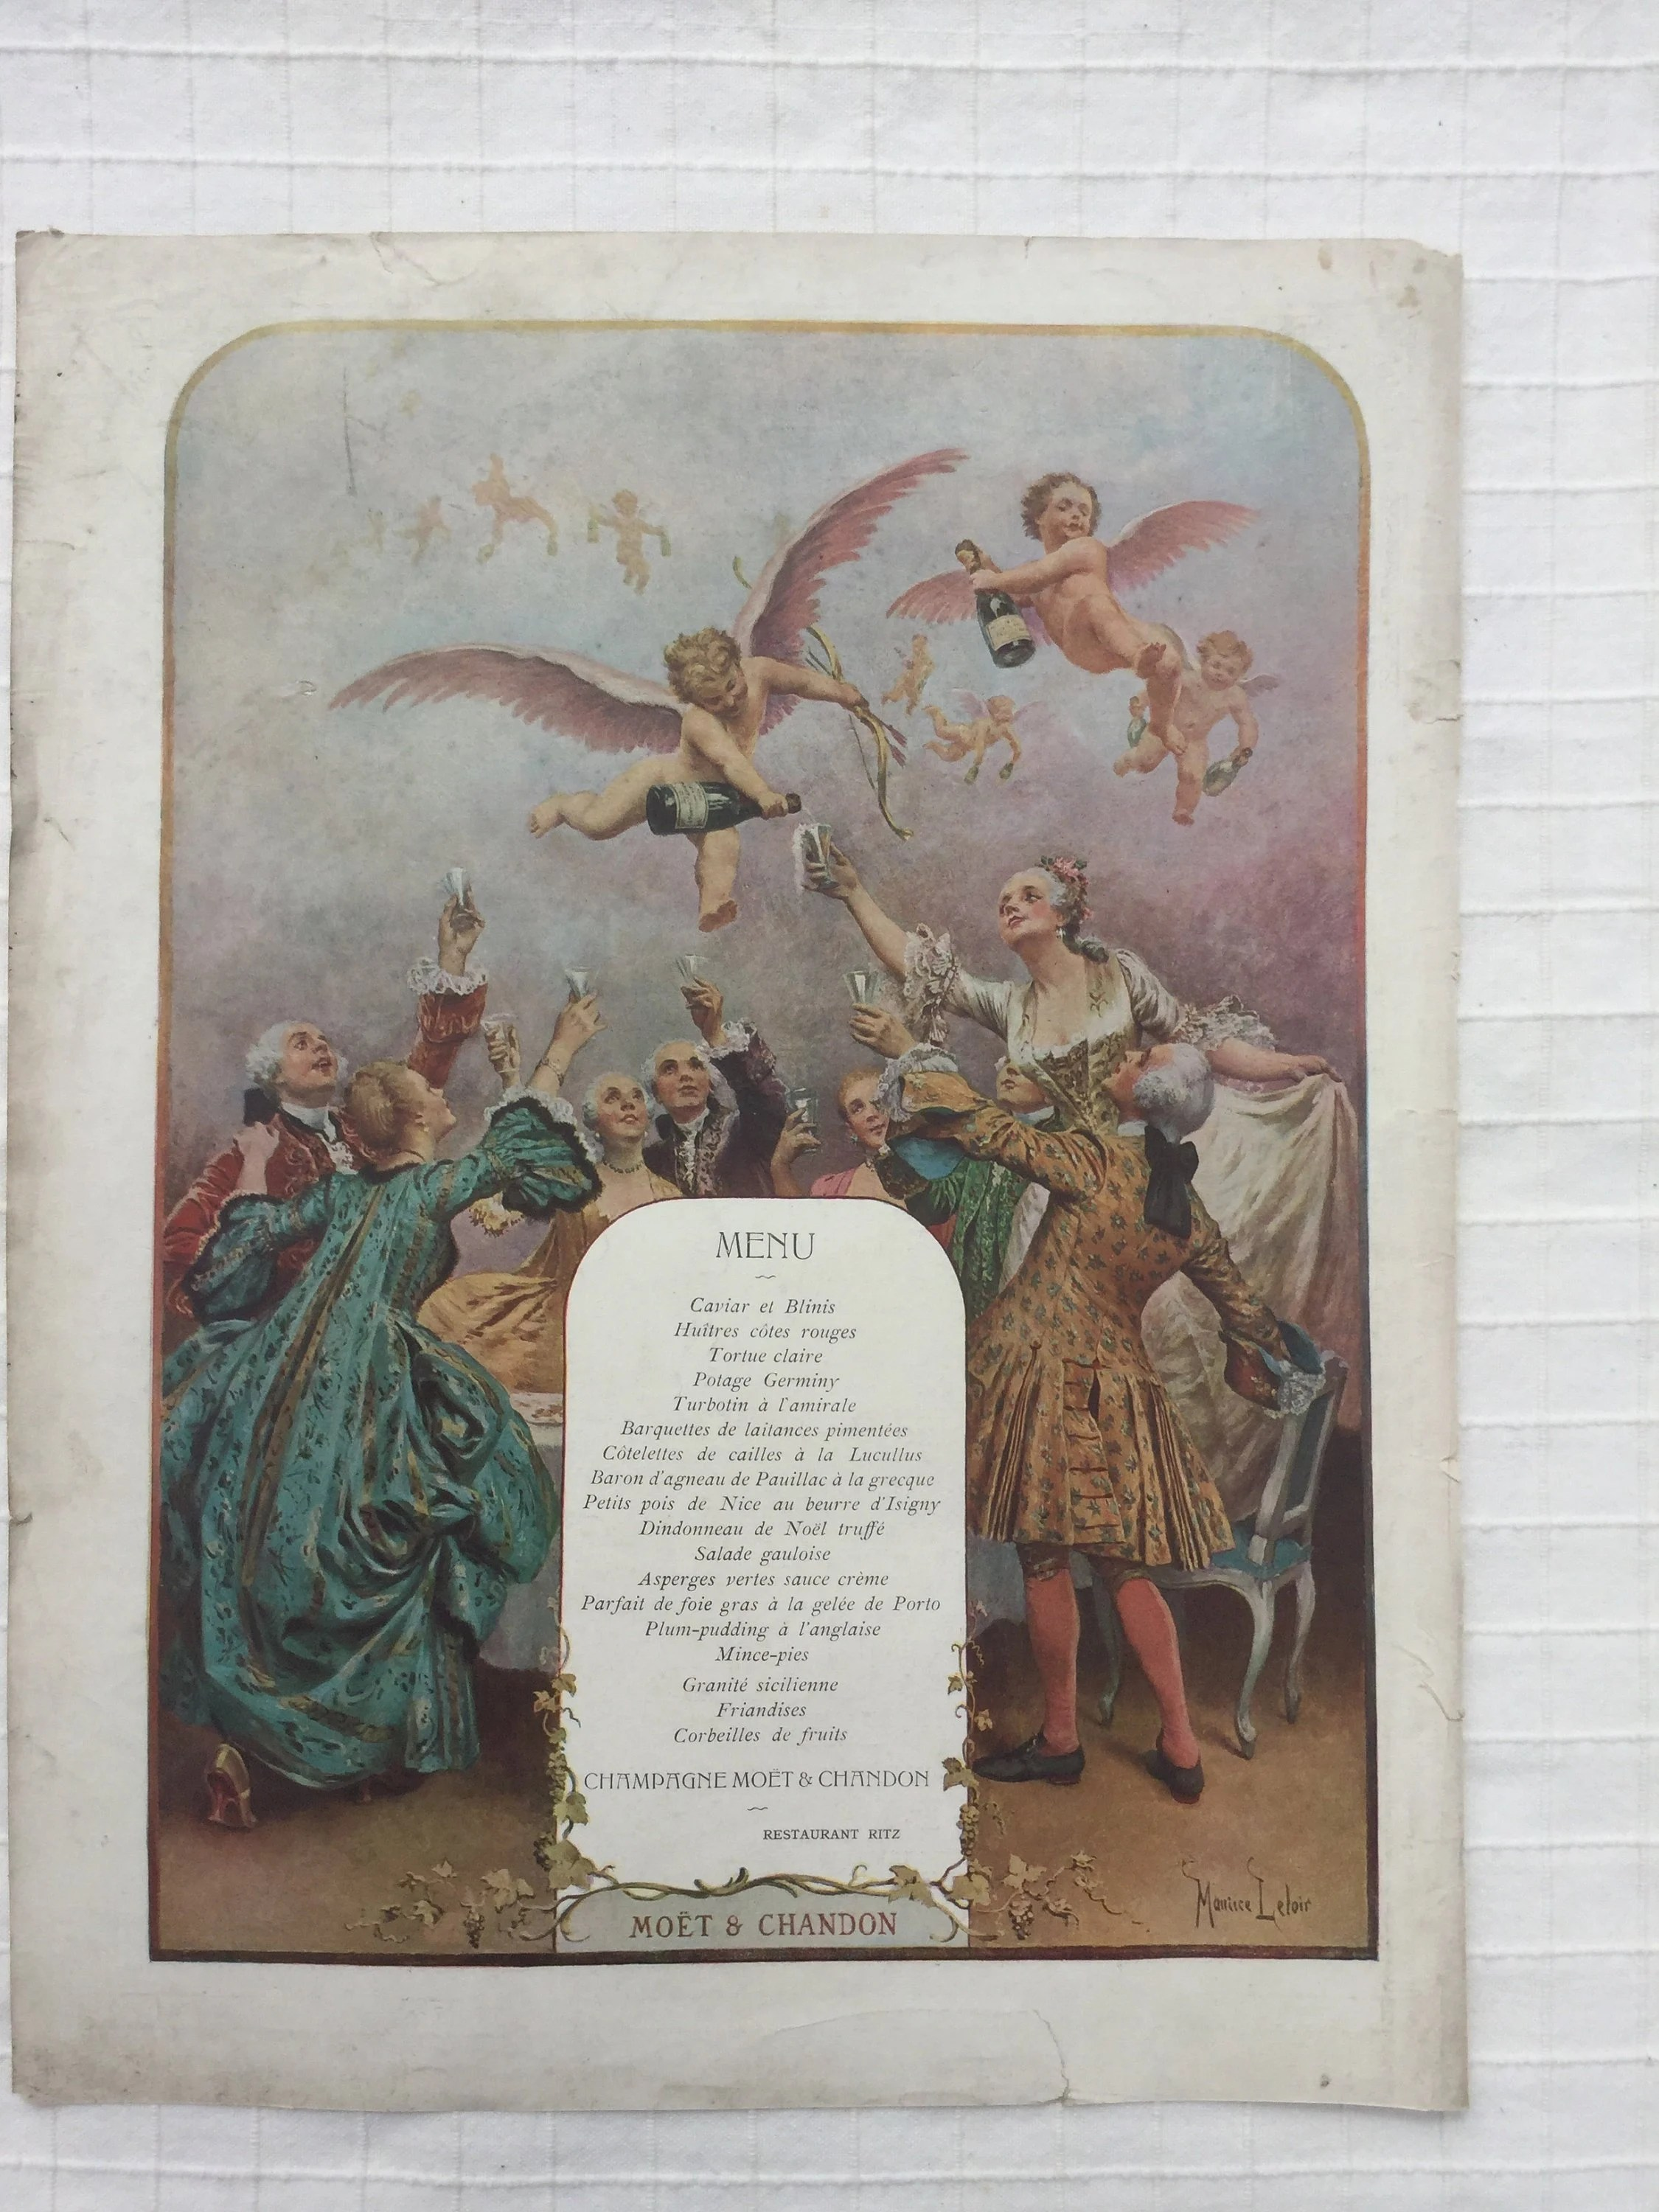 Menu De Noel Original Original French Antique Full Page Advertising For Moet Chandon From 1908 Paris Magazine Great Wall Art Poster Decorative Item